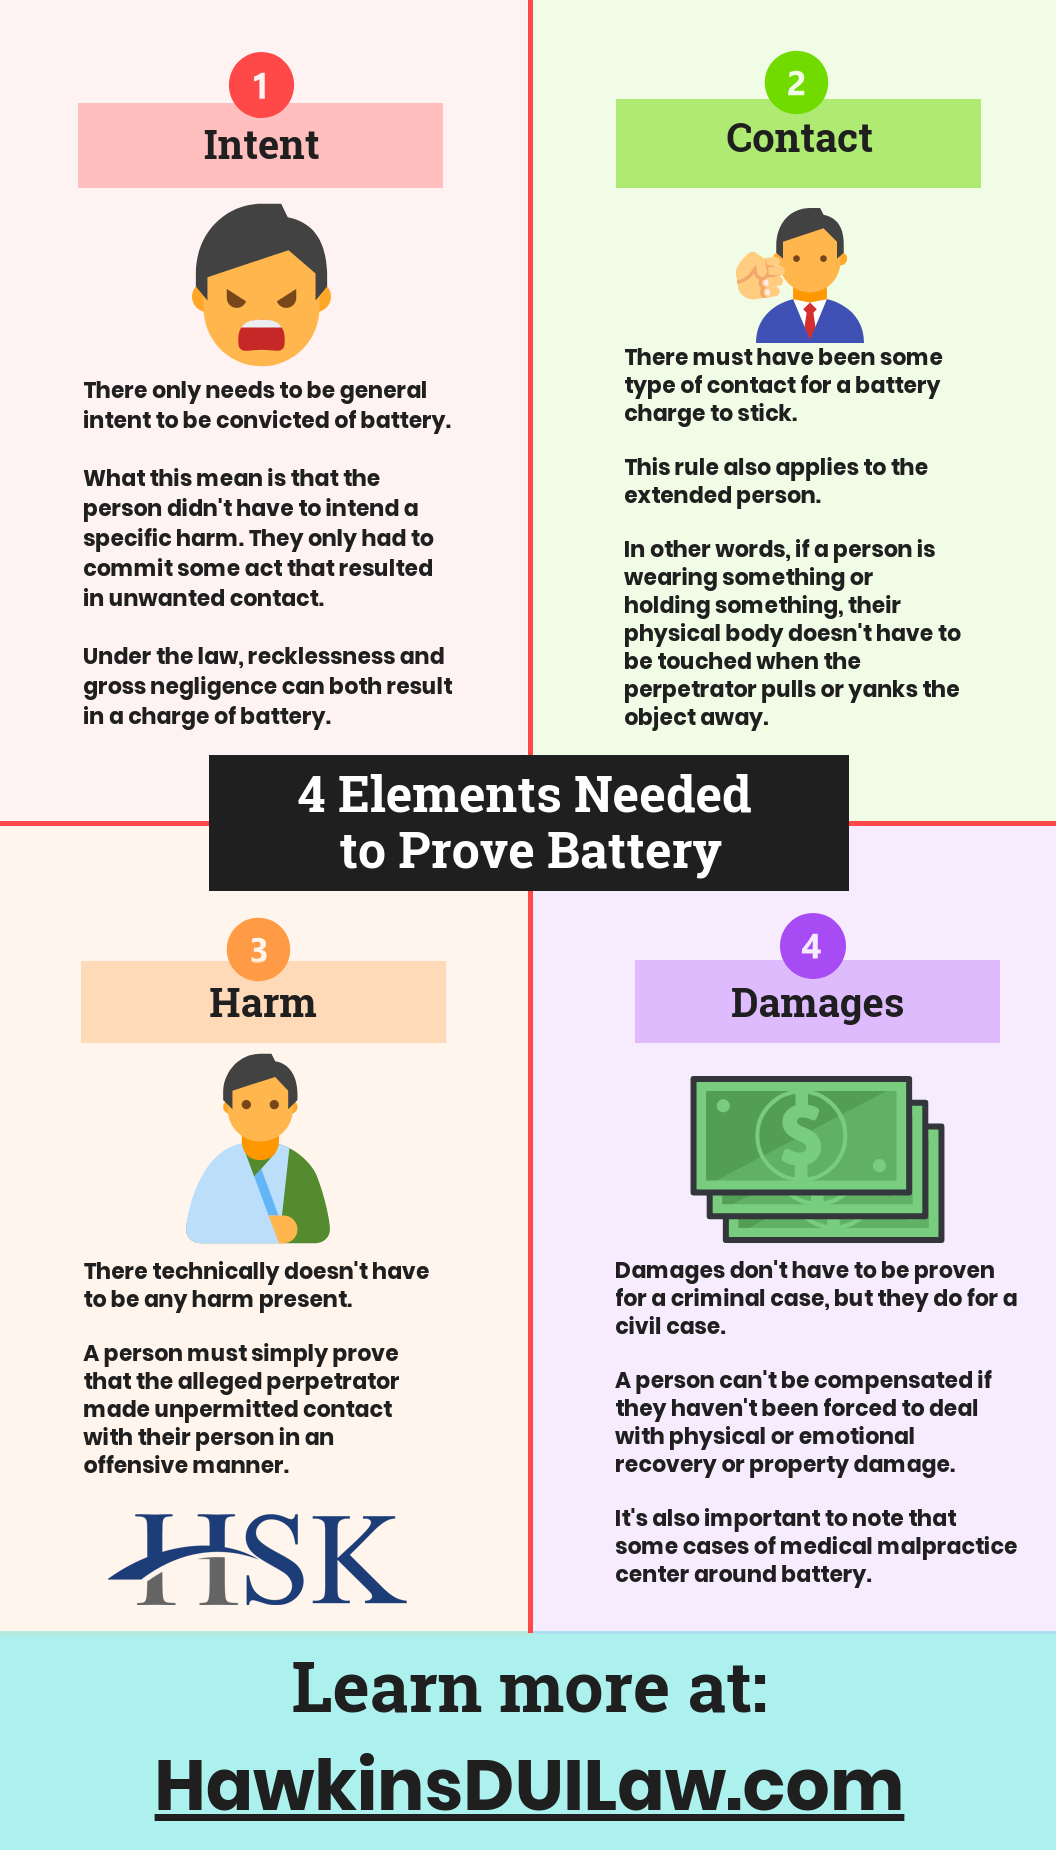 4 Elements Needed to Prove Battery infographic